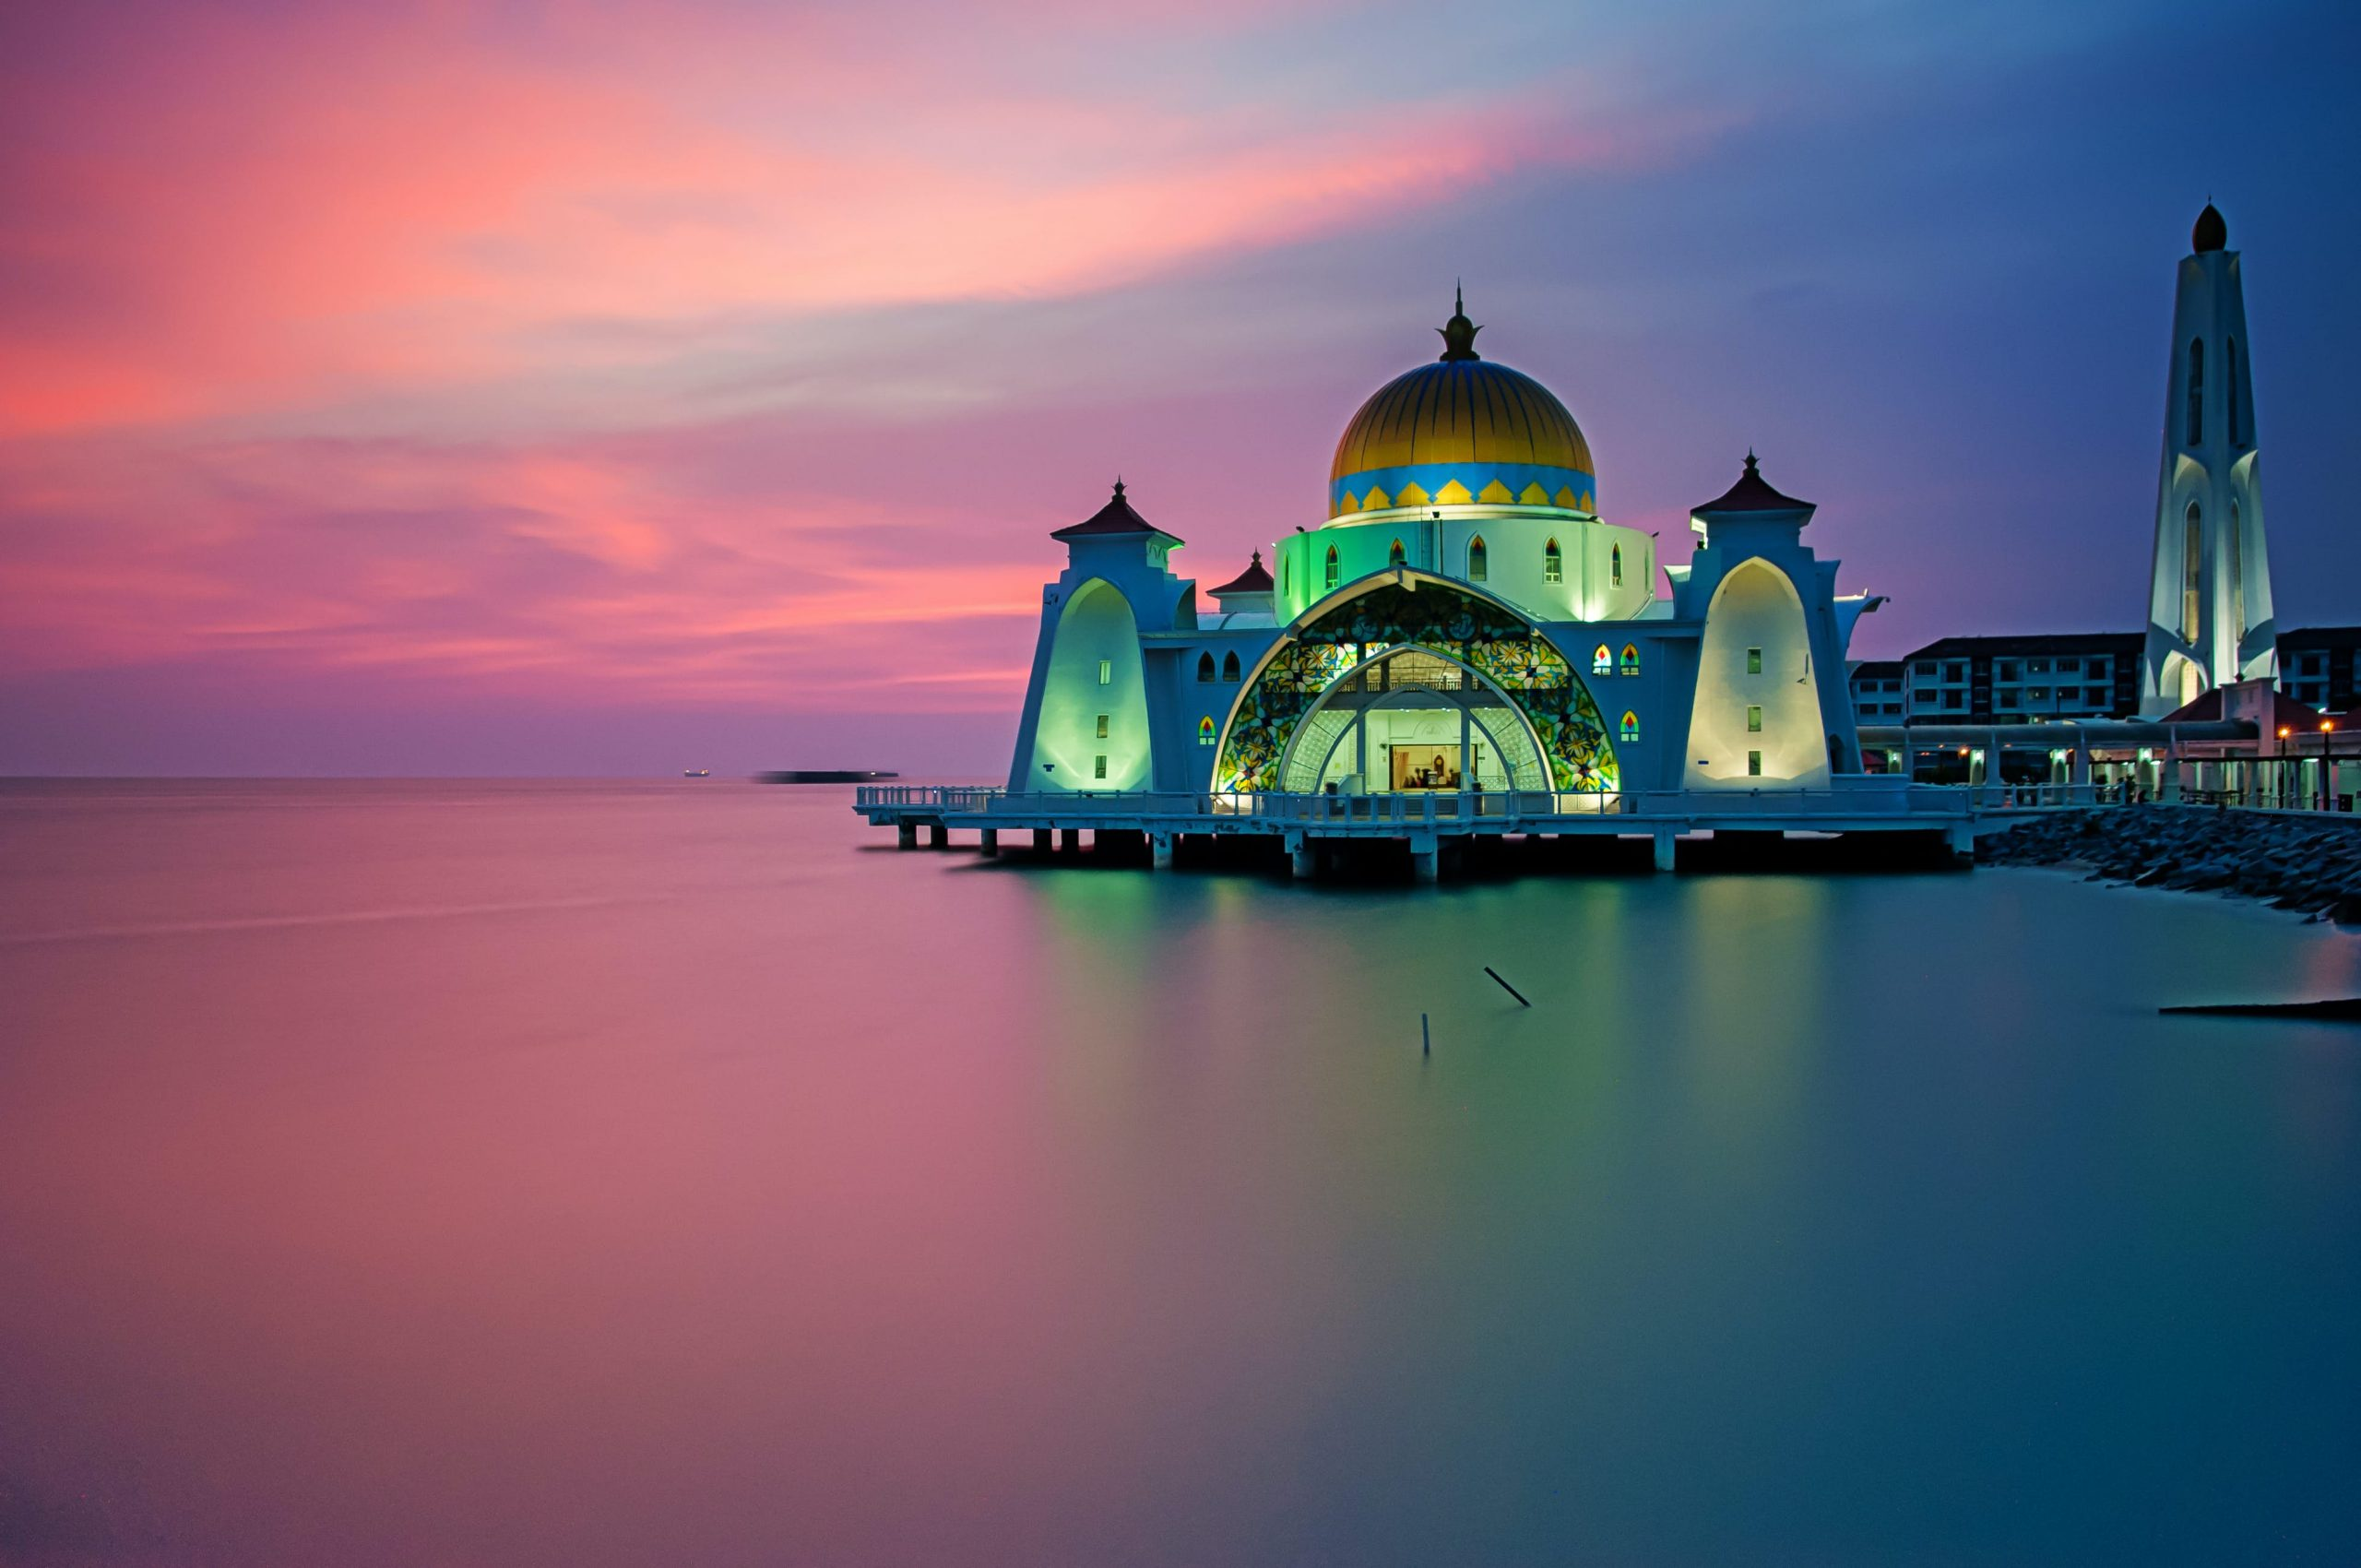 Melaka Straits Mosque, gracing the shores of Melaka, facing the Straits from which it gets its name, is one of many picturesque icons in Melaka